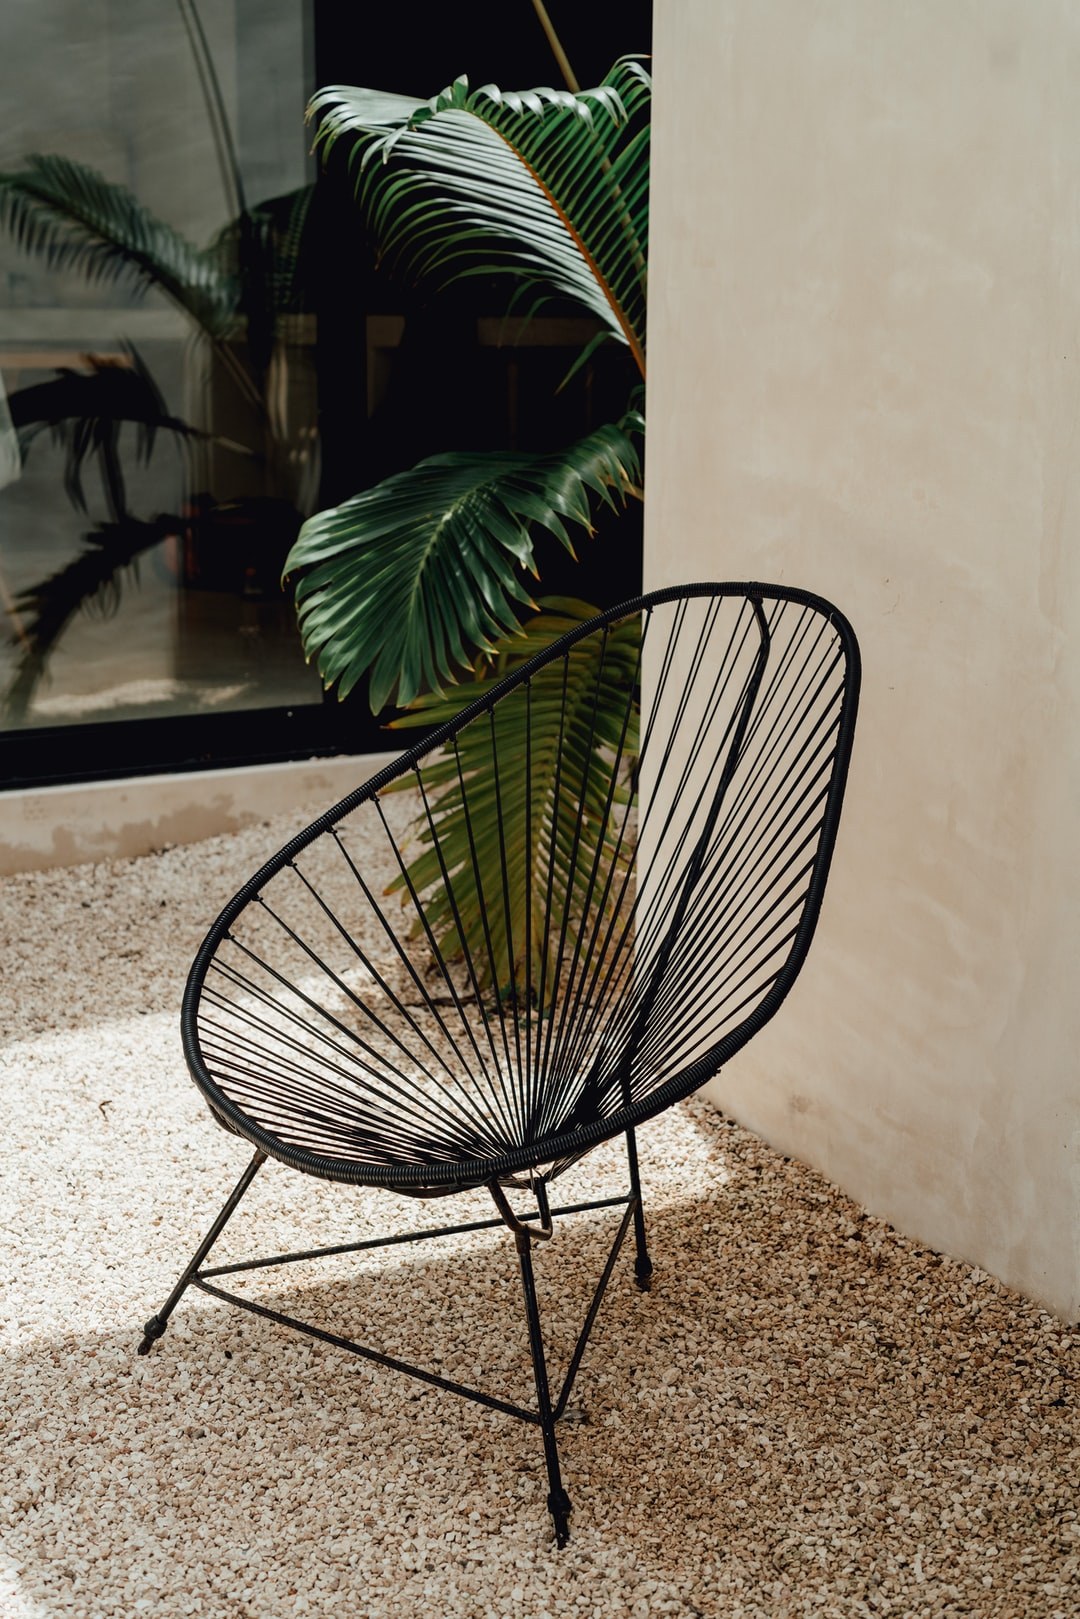 The Latest Outdoor Furniture Trends for Summer 2021